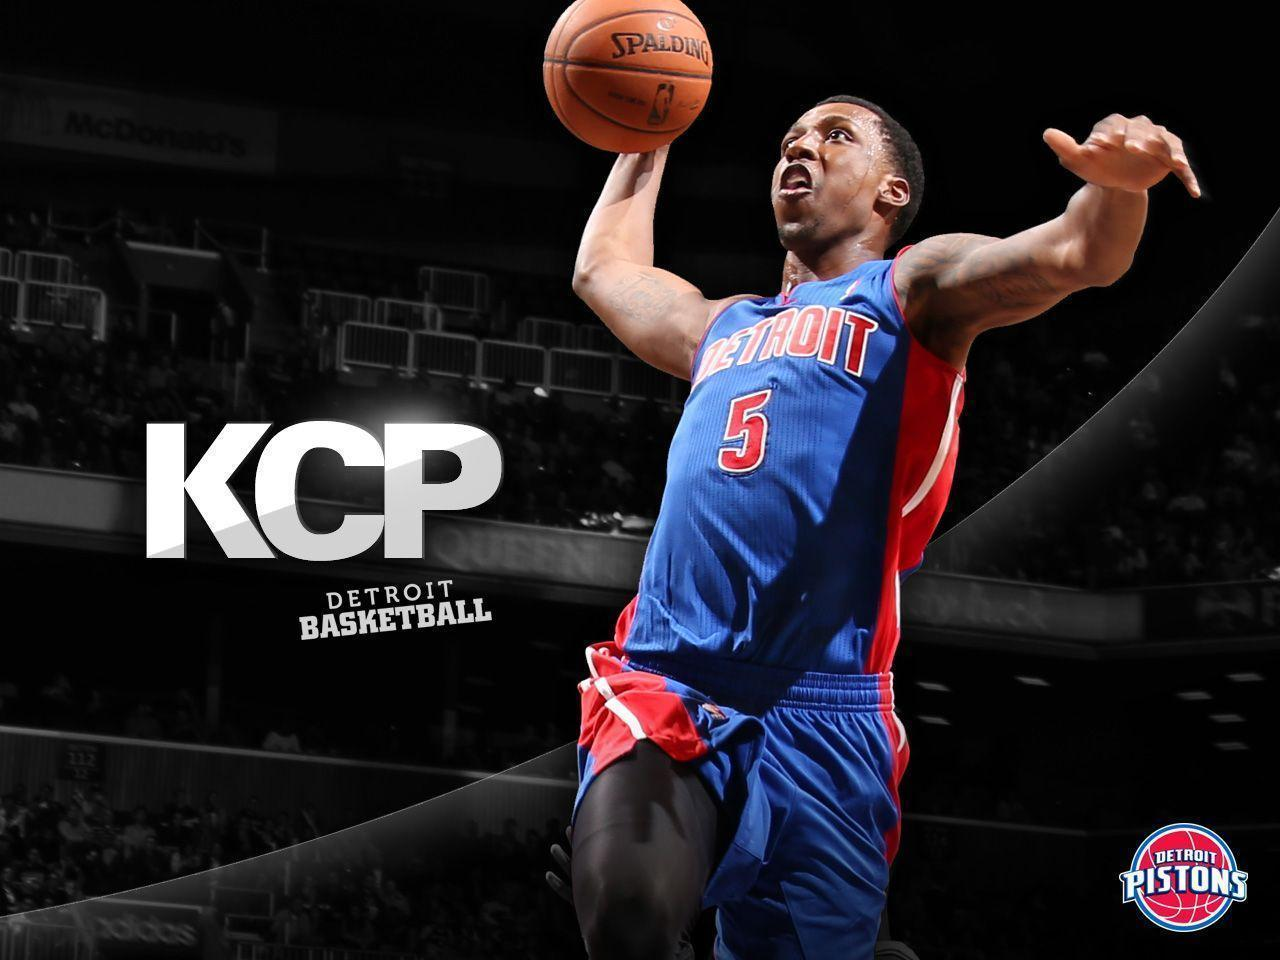 Detroit Pistons Wallpapers 2015